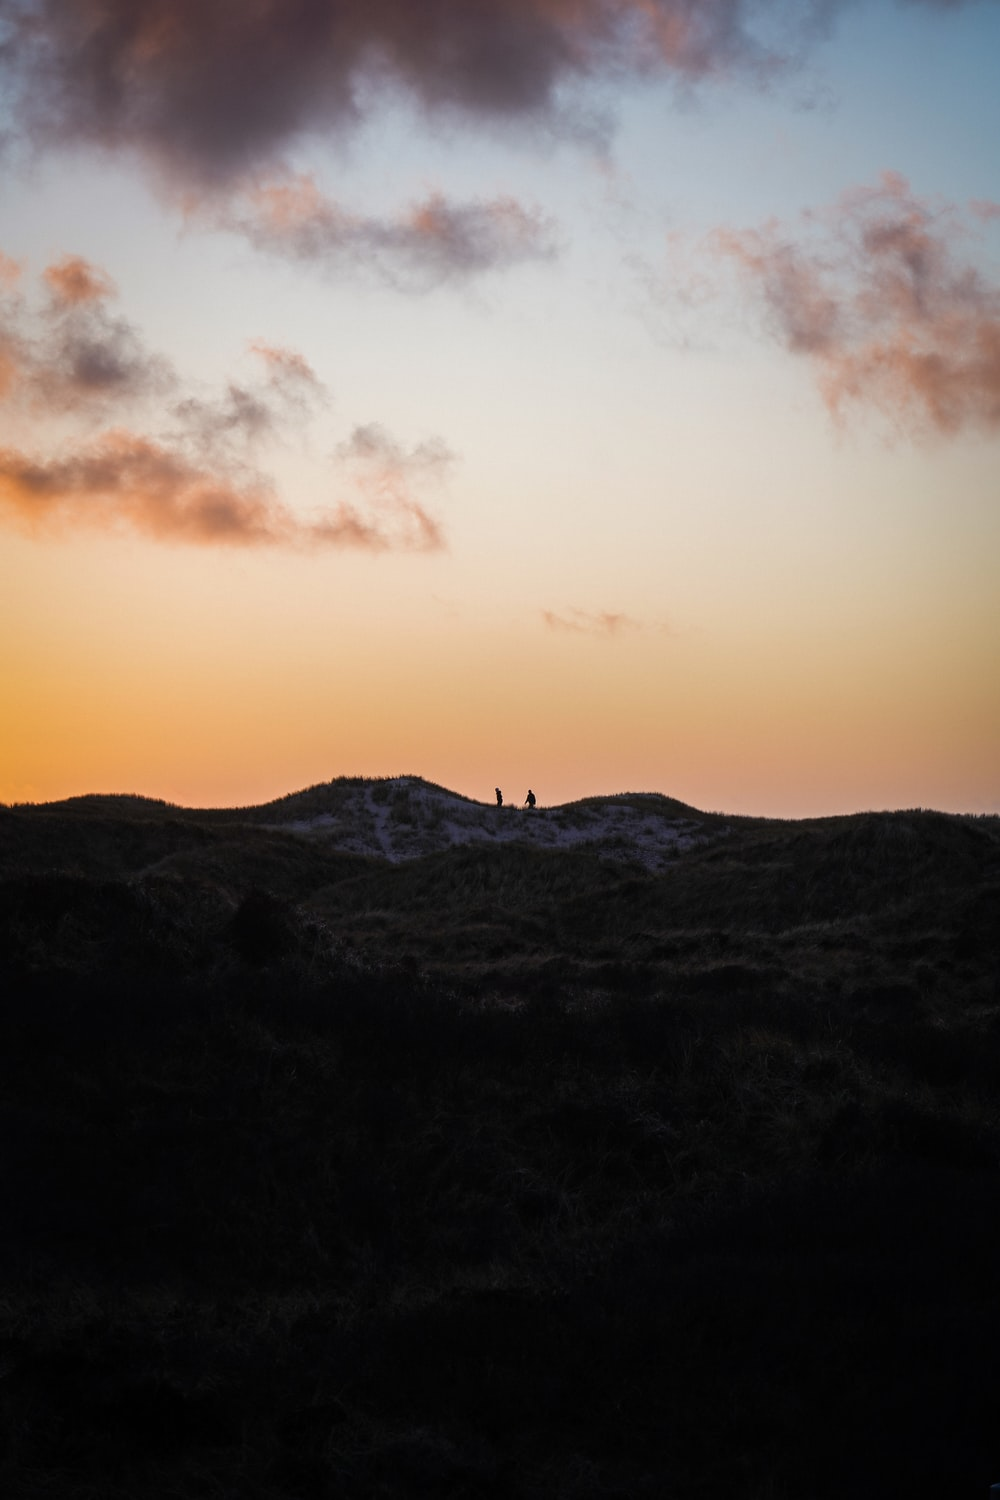 silhouette of person standing on top of mountain during sunset